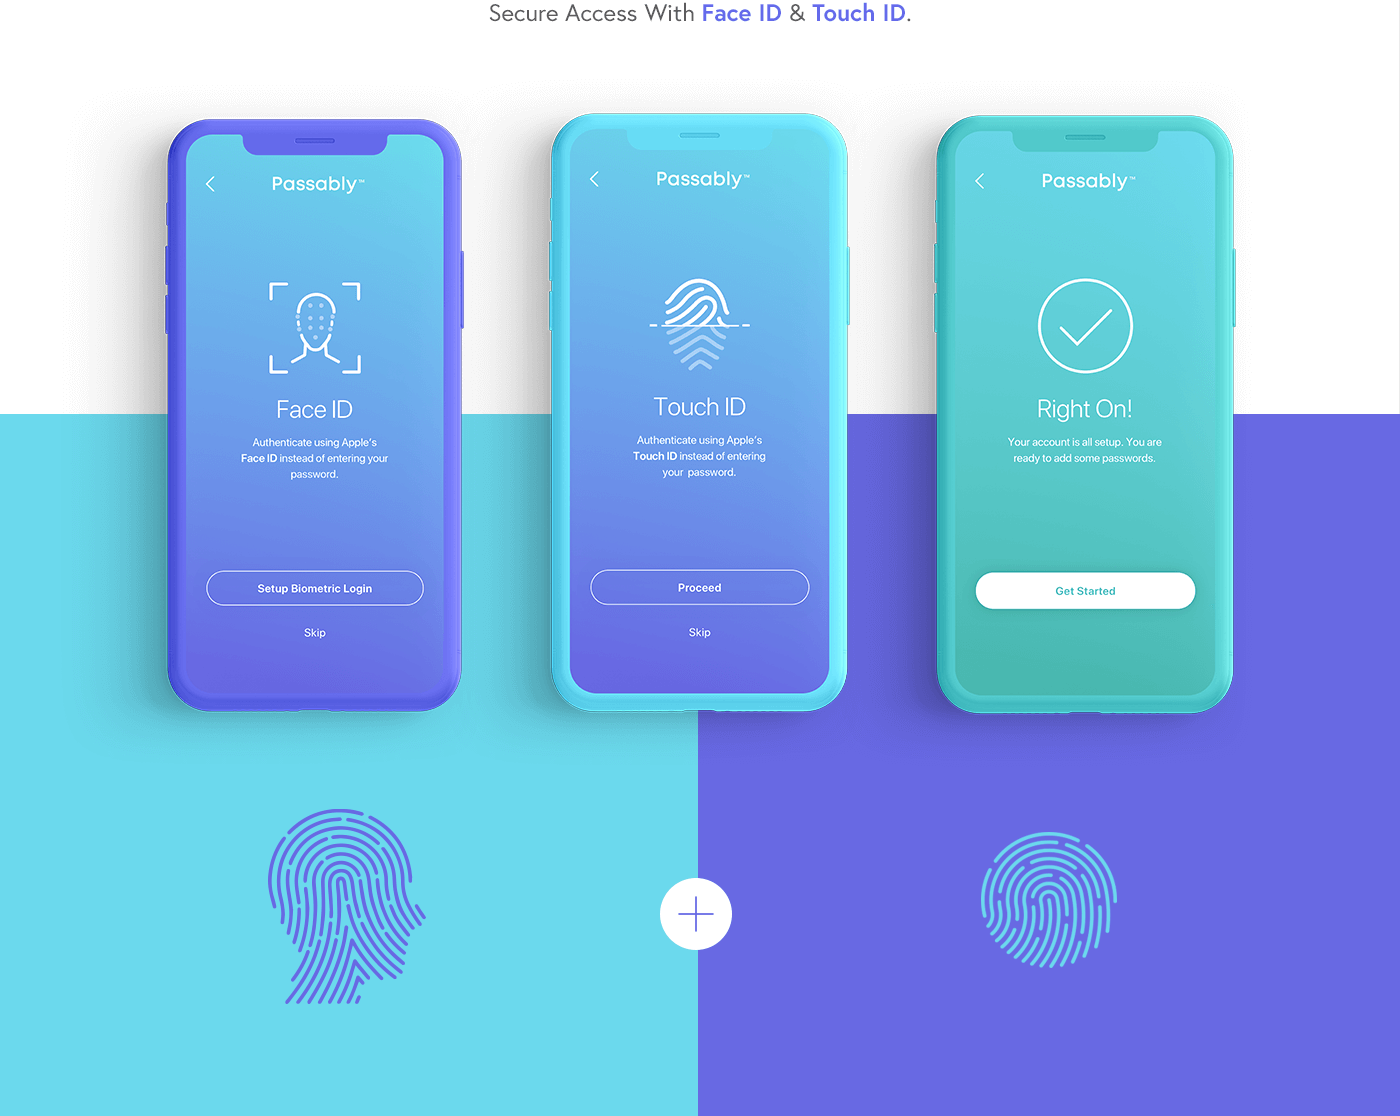 Passably App - UX/UI Design #guidesign